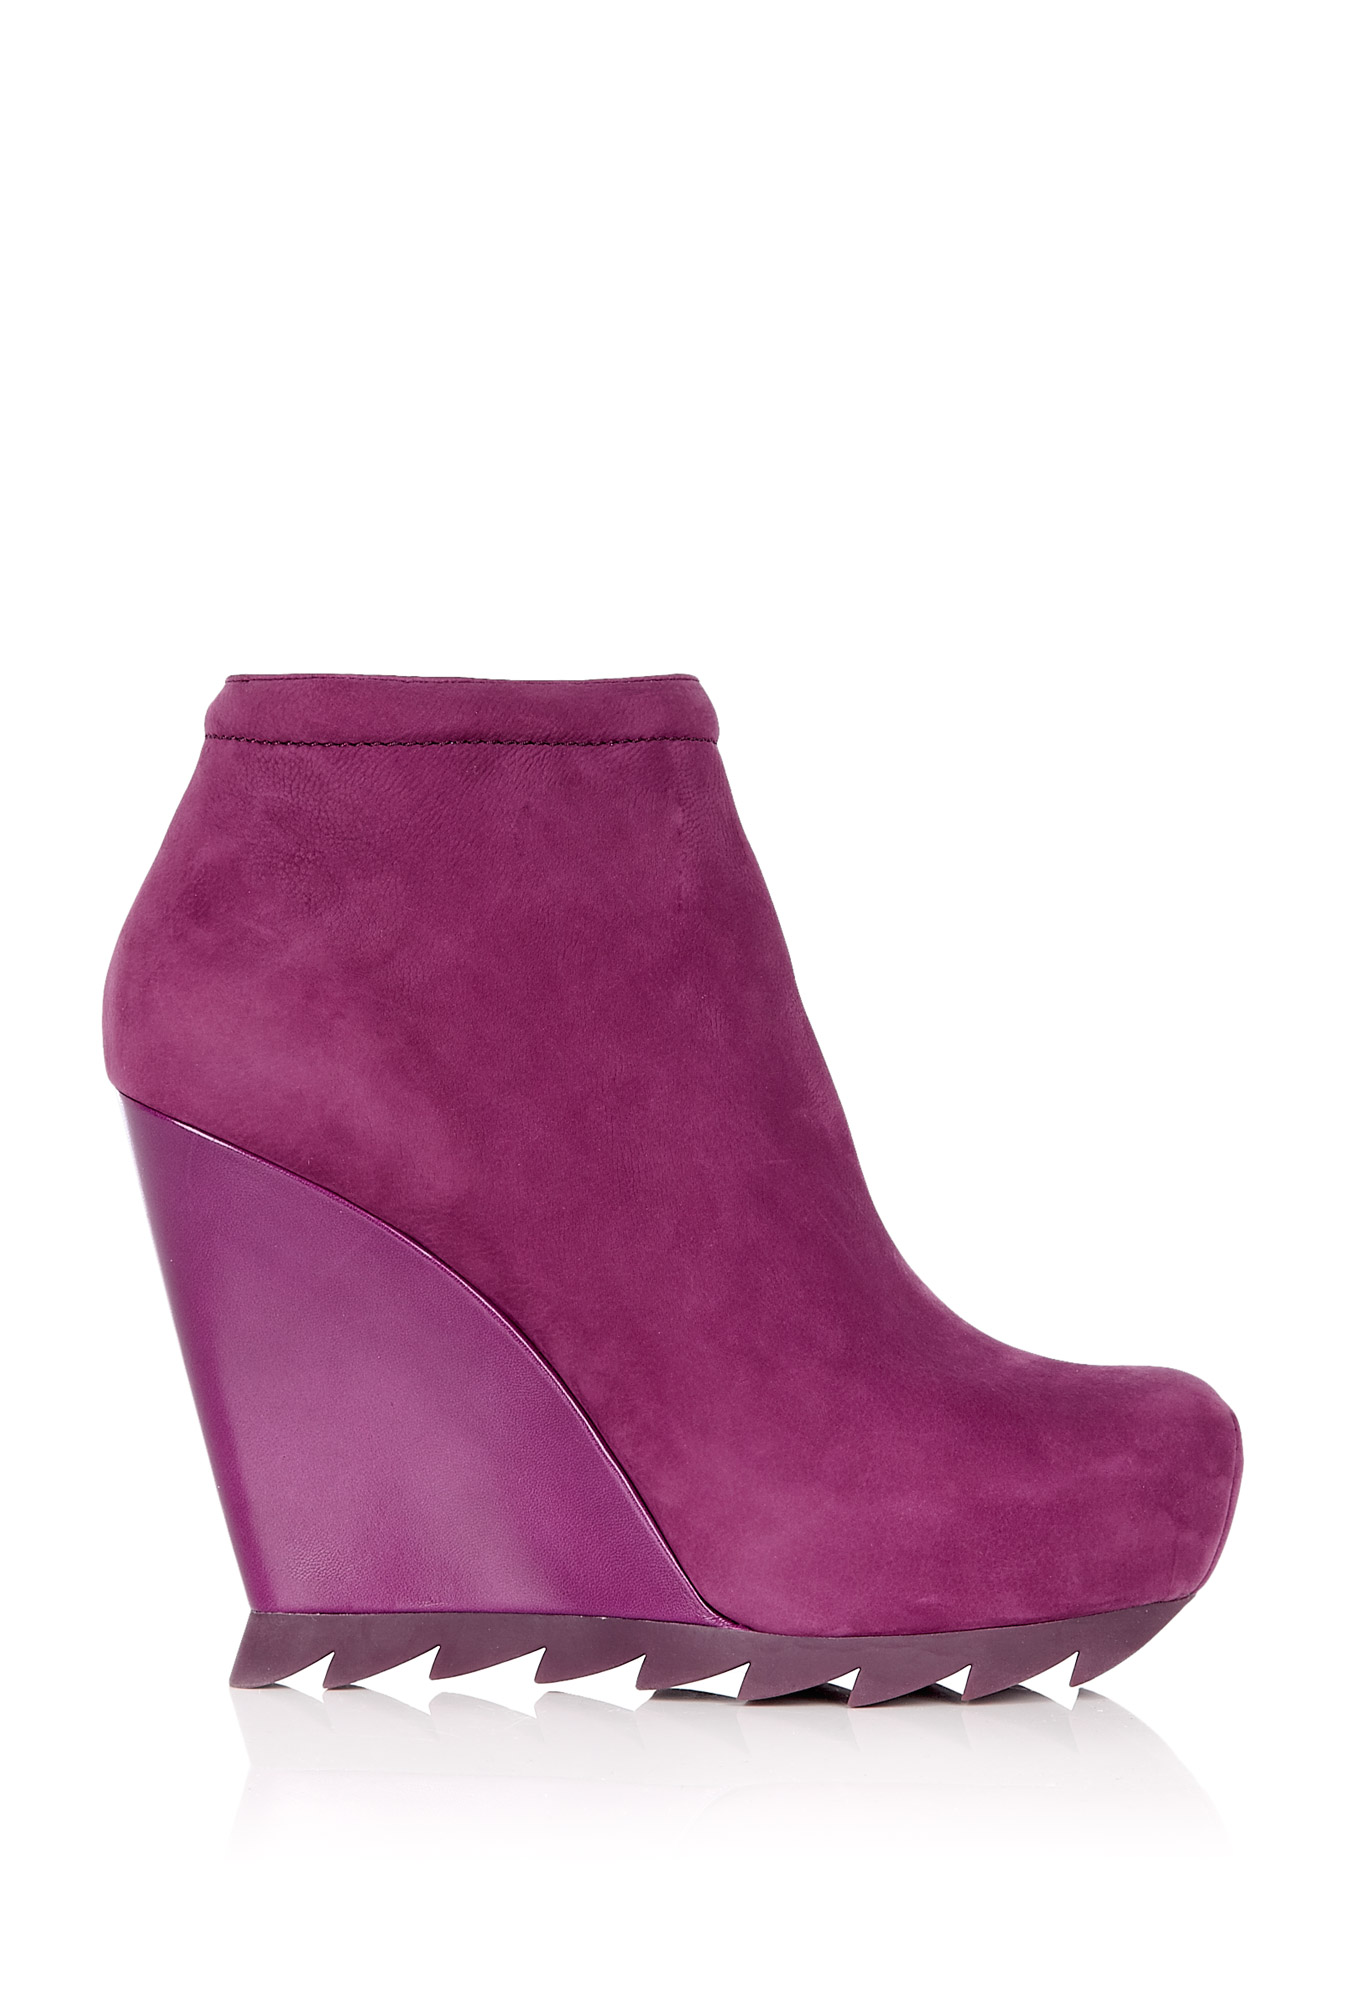 Burgandy ankle wedge boot with saw sole by camilla skovgaard